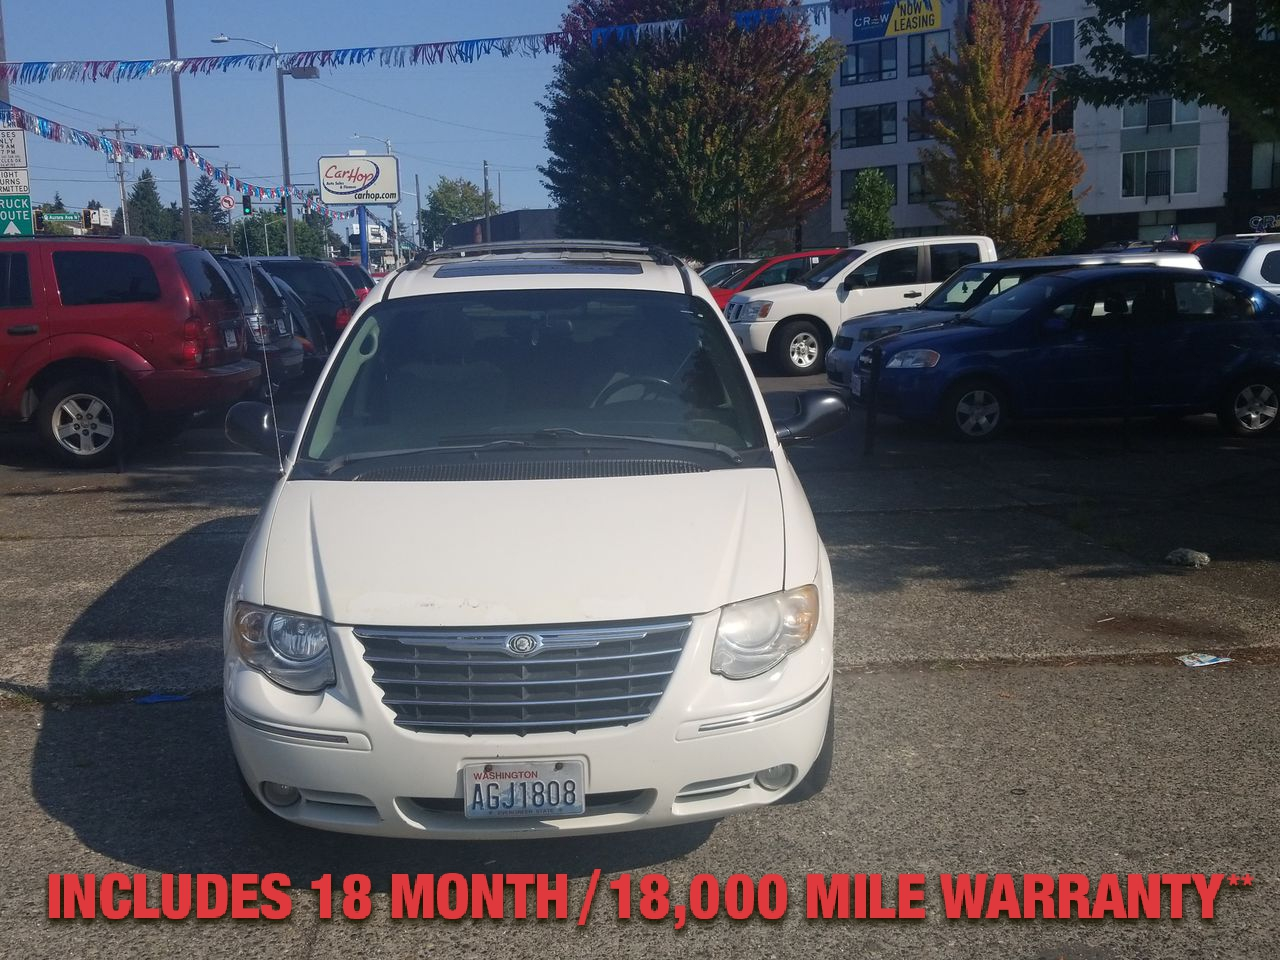 Pre-Owned 2005 CHRYSLER TOWN & COUNTRY Limited Mi